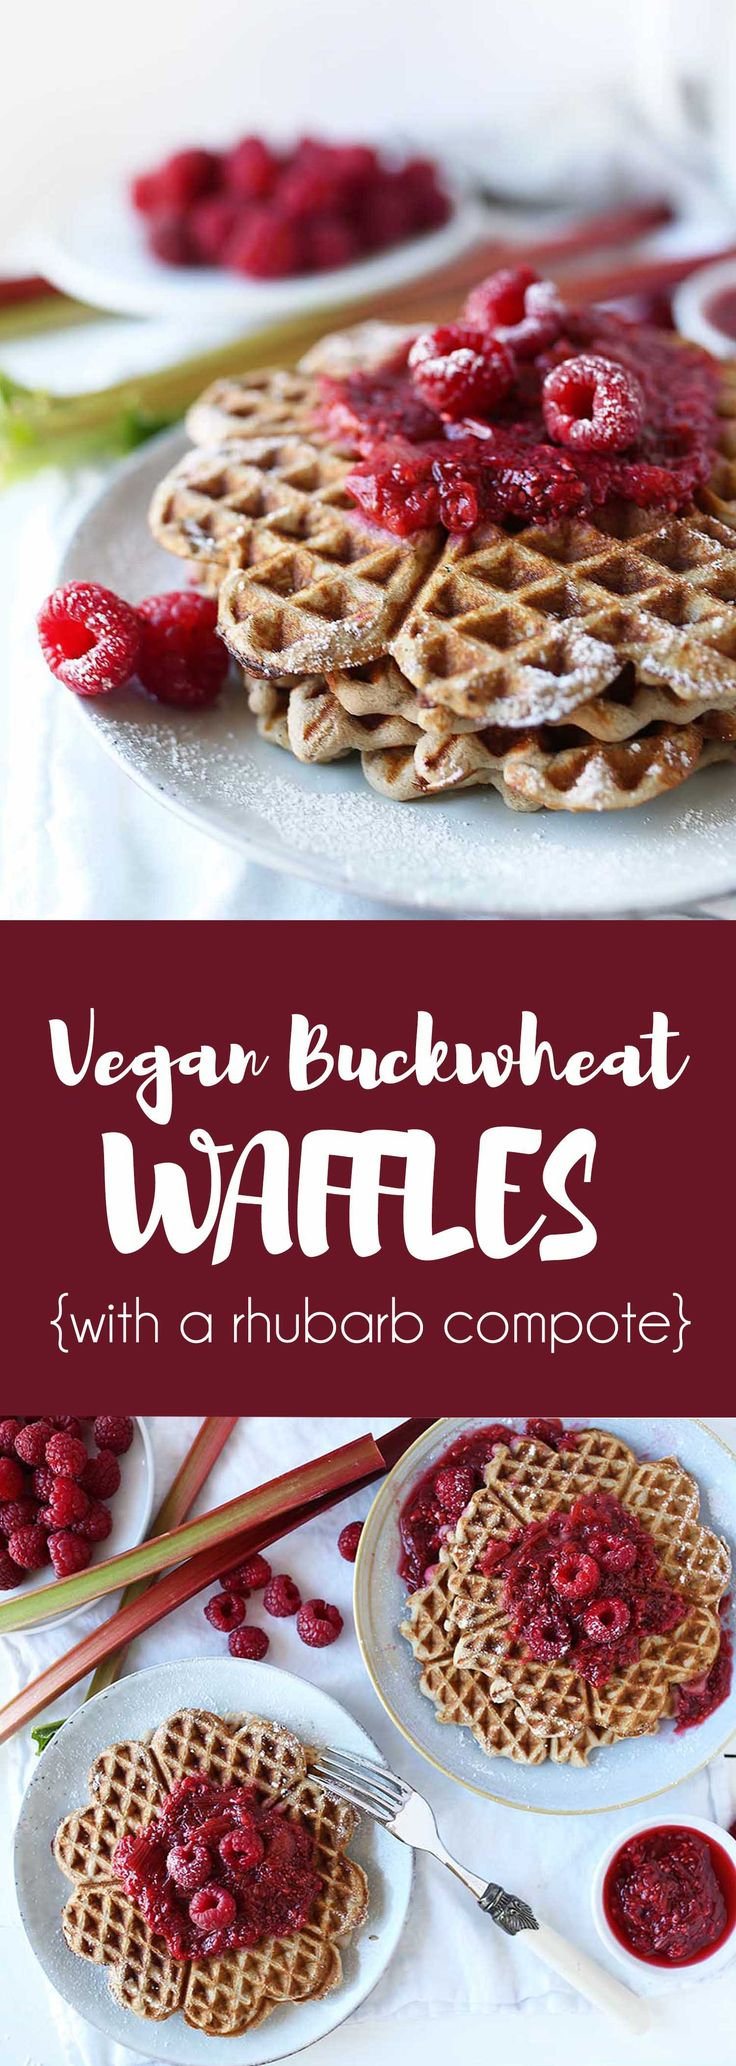 Vegan Buckwheat waffles with a rhubarb-raspberry compote